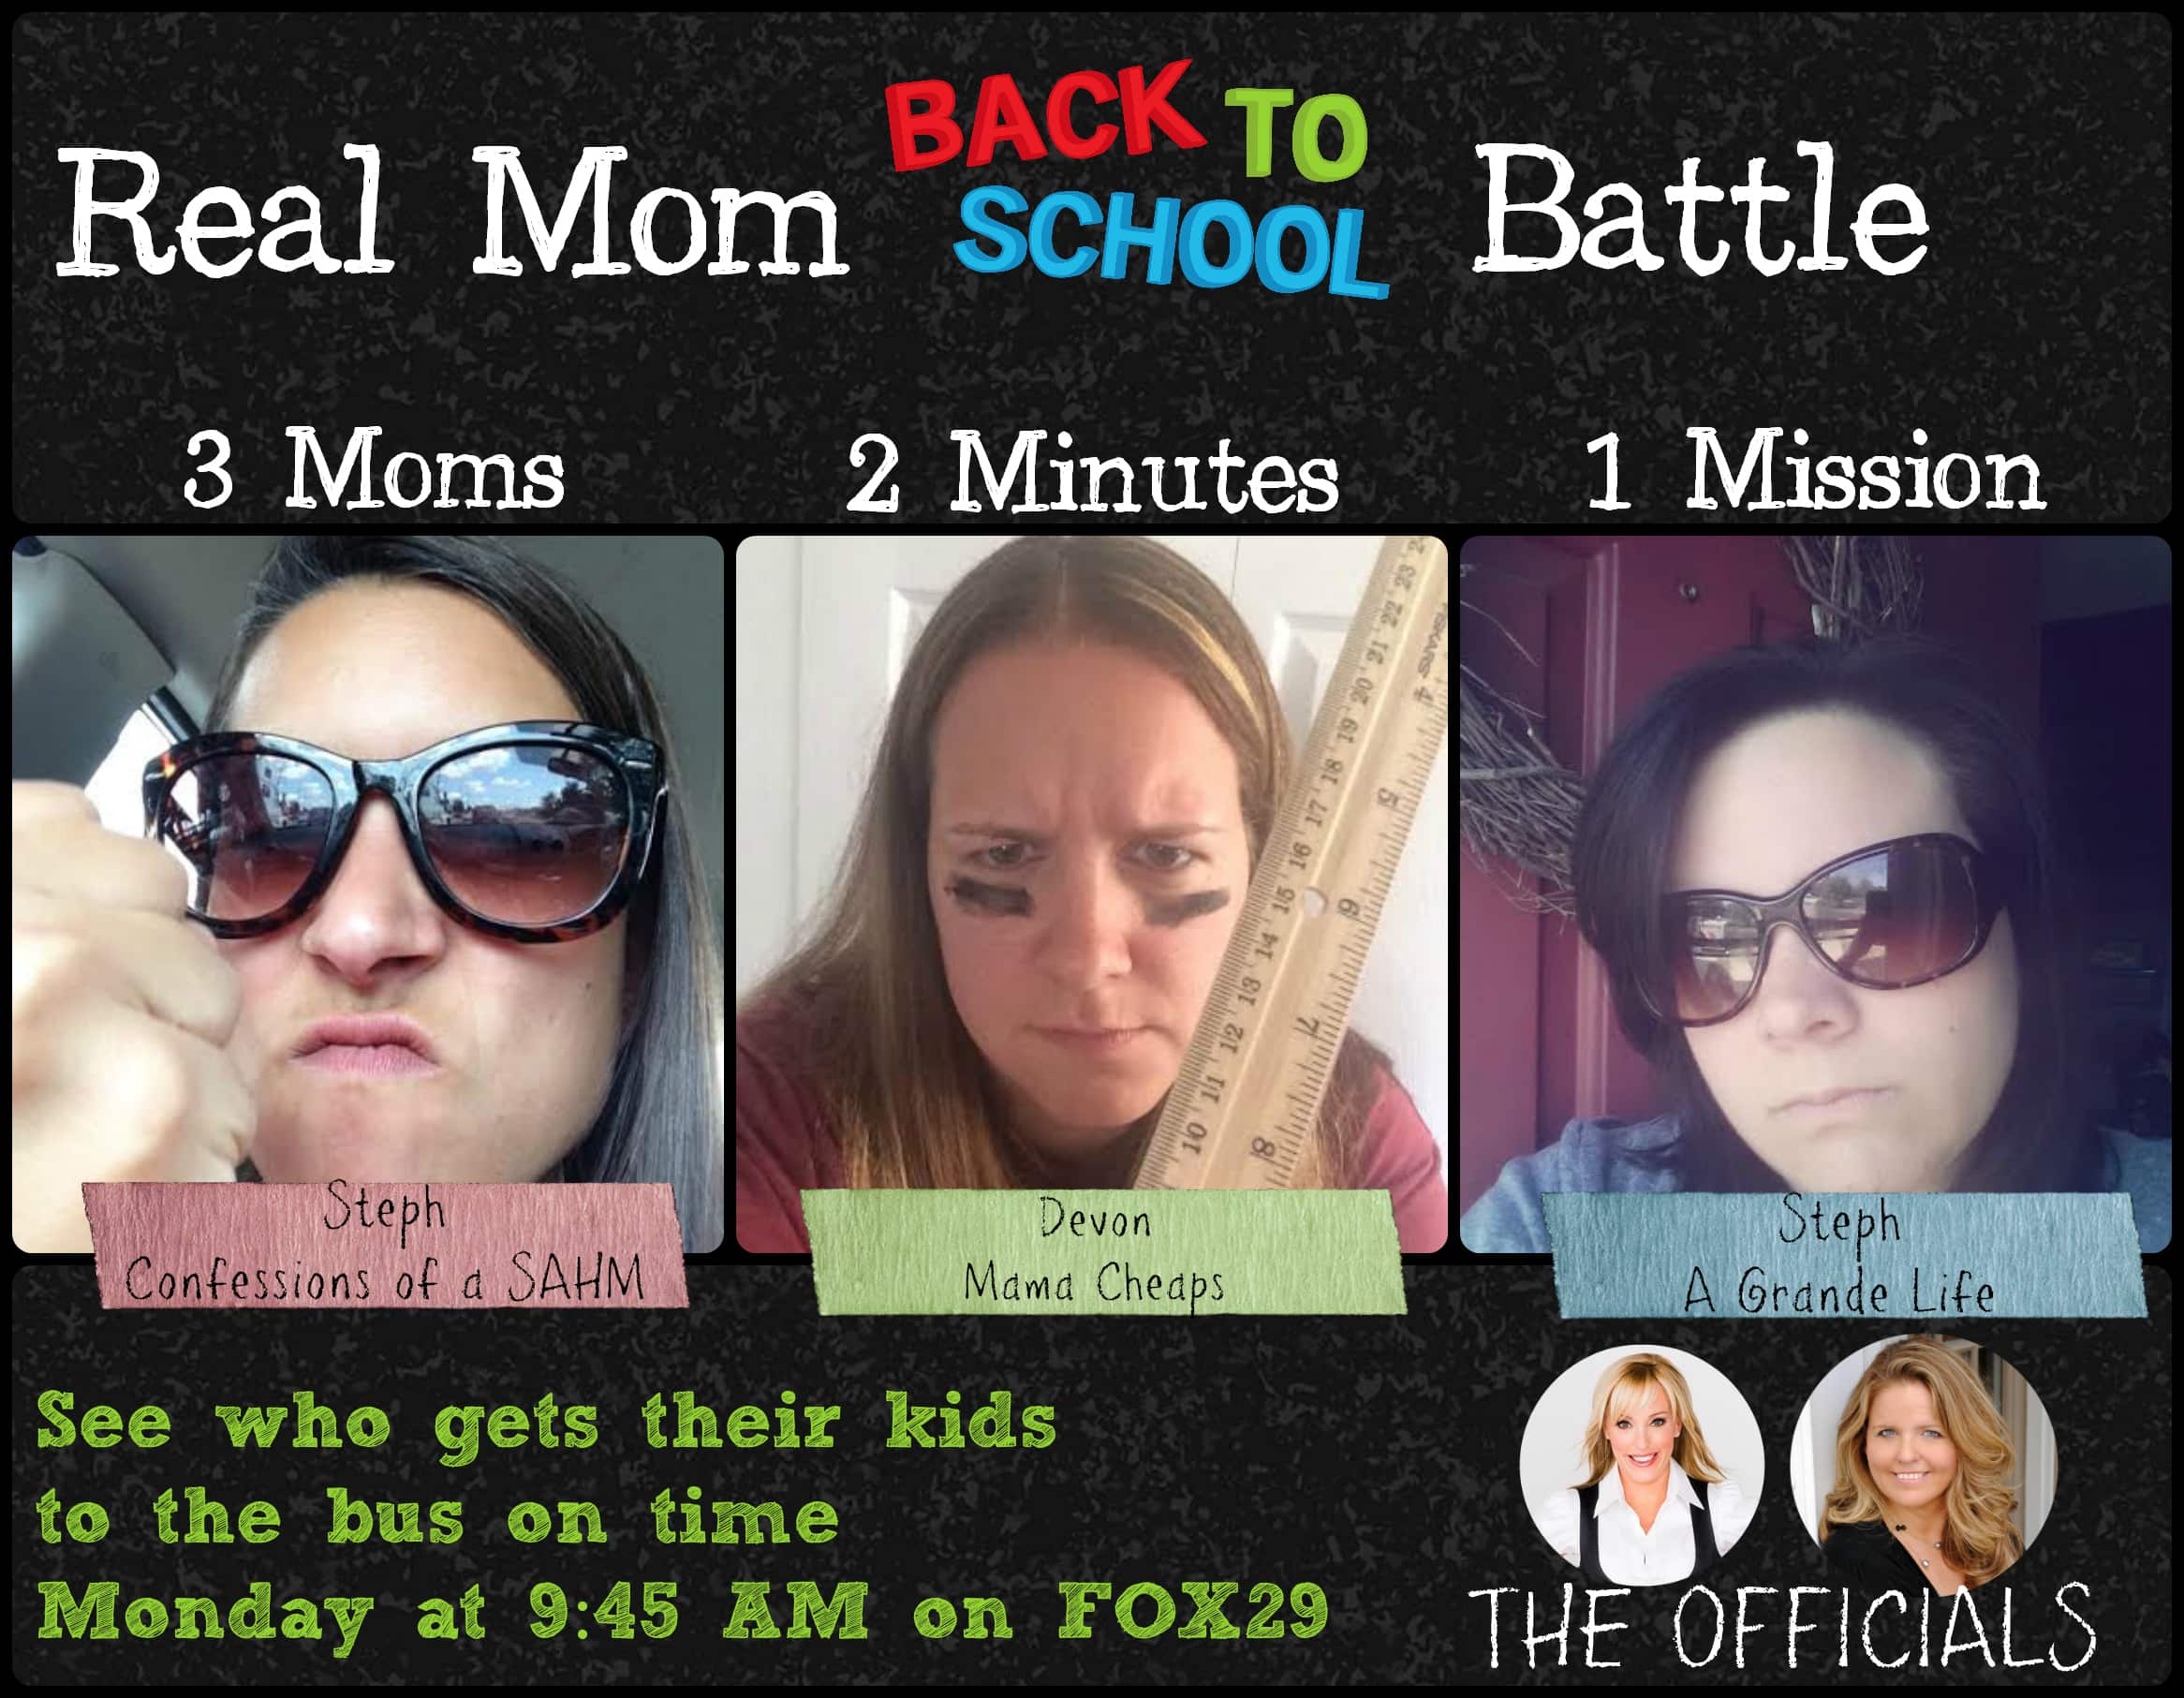 REAL MOM BTS BATTLE